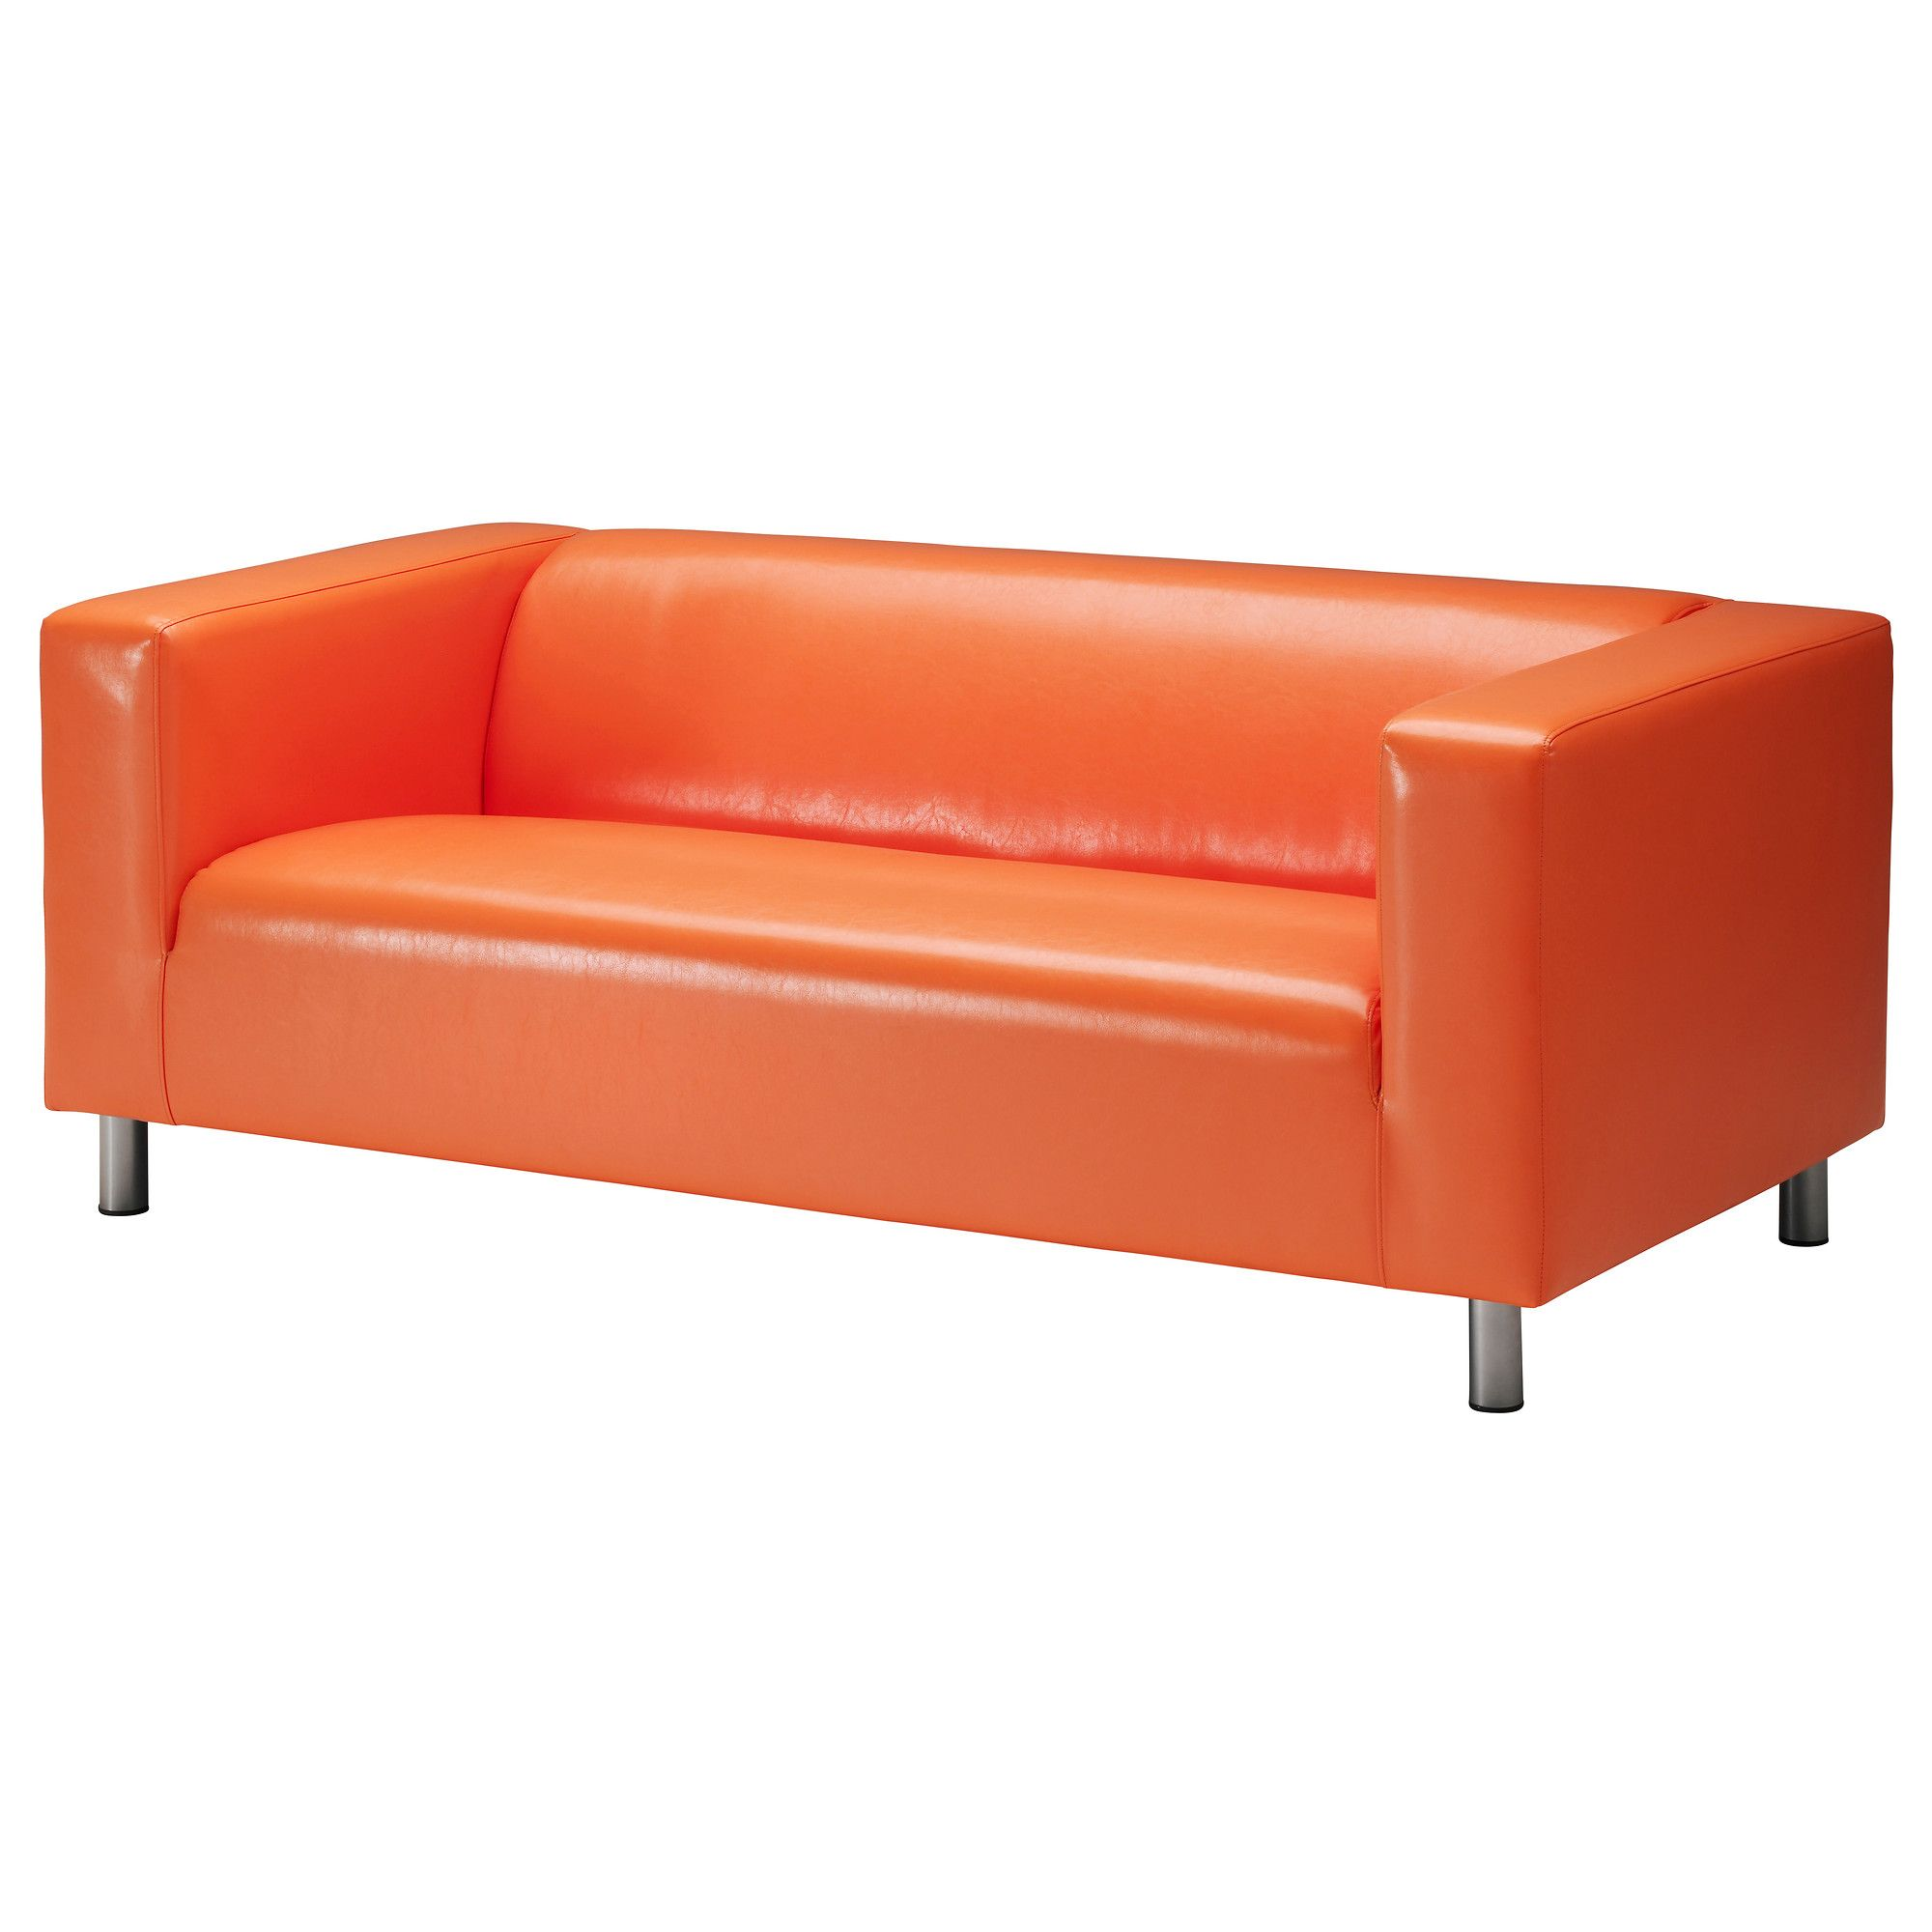 Brilliant Furniture And Home Furnishings Orange Leather Sofas Small Machost Co Dining Chair Design Ideas Machostcouk